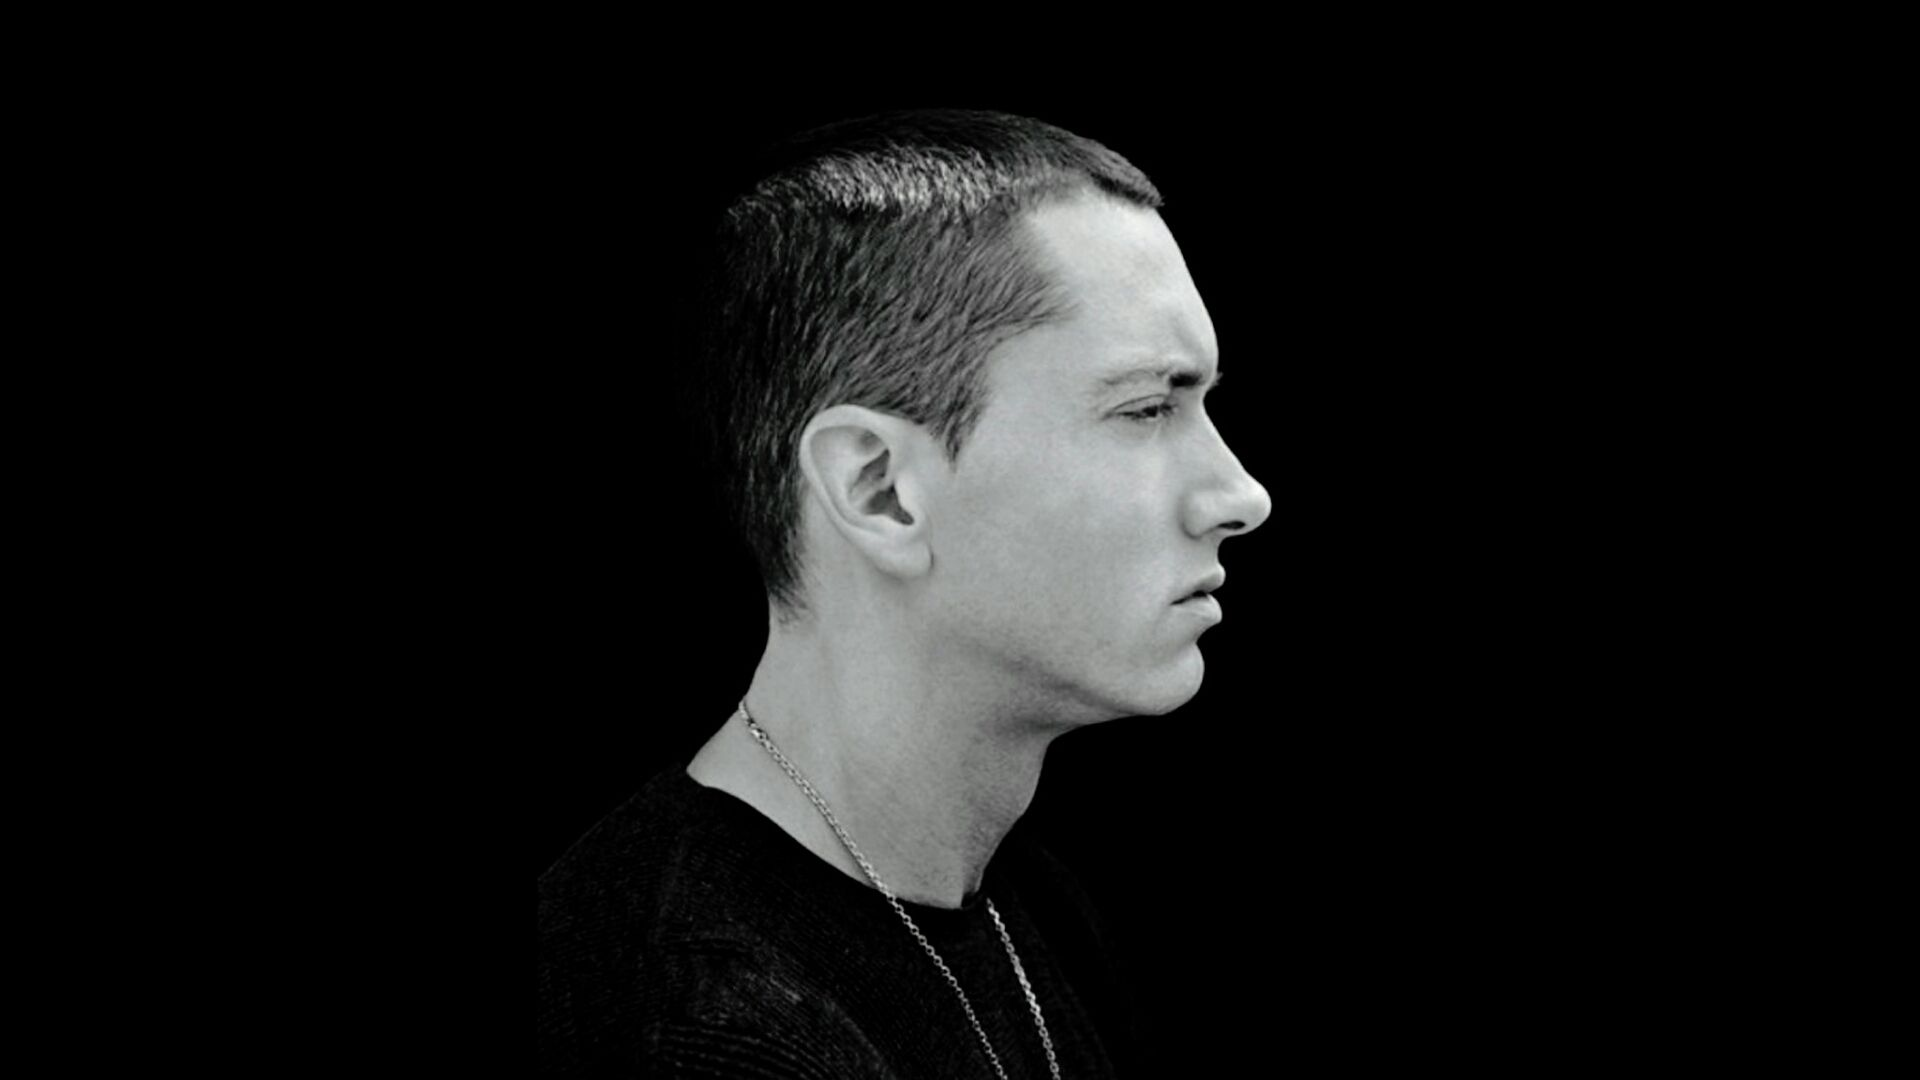 eminem, hd quality wallpapers for free